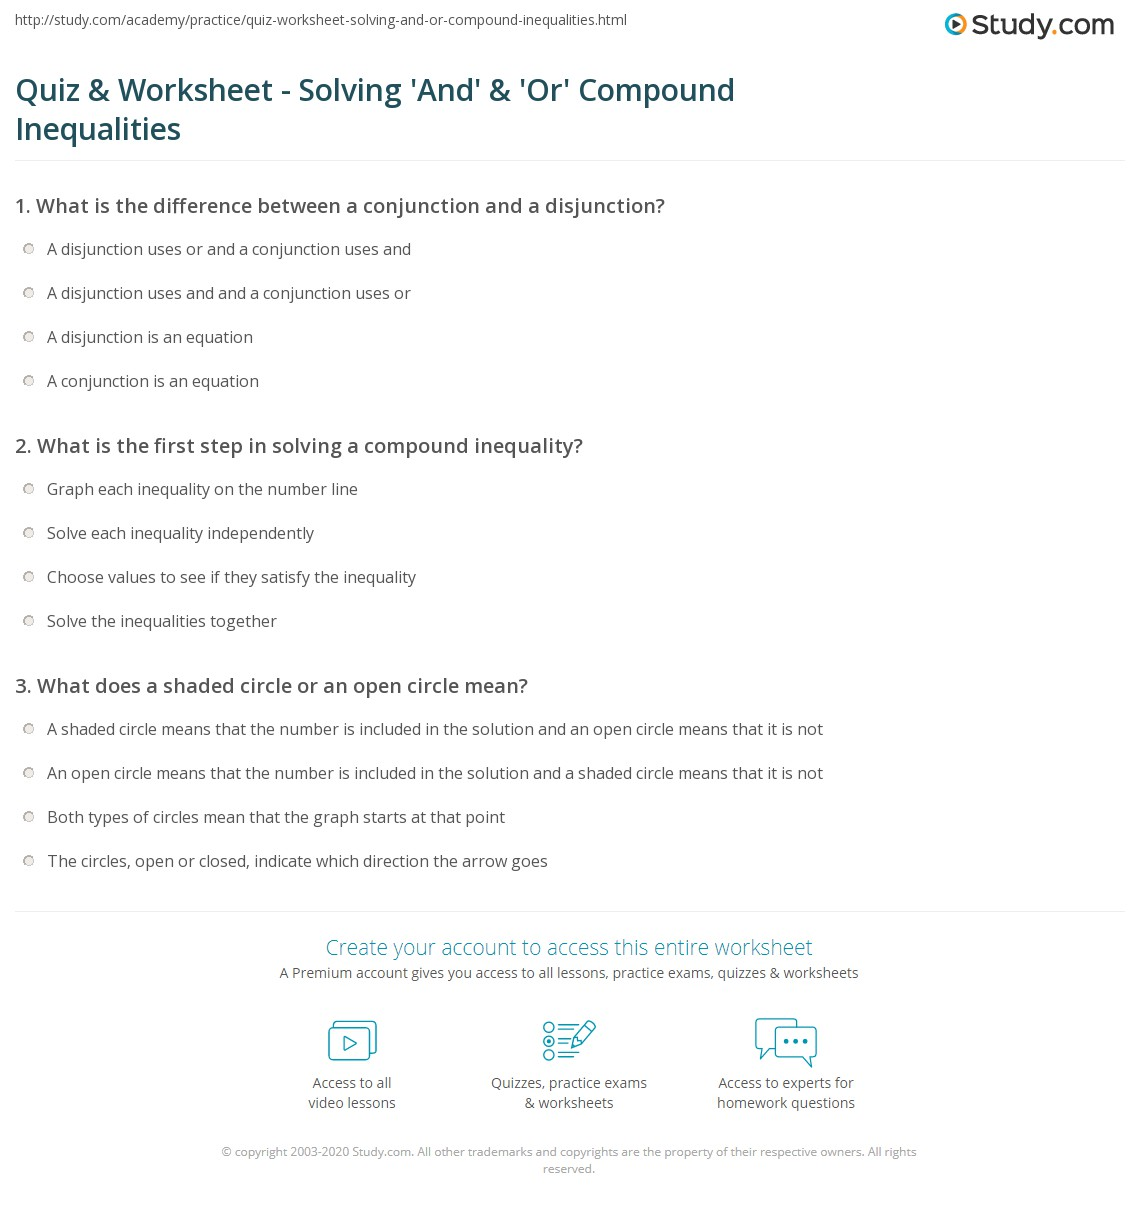 Worksheets Compound Inequalities Worksheet quiz worksheet solving and or compound inequalities print how to solve worksheet